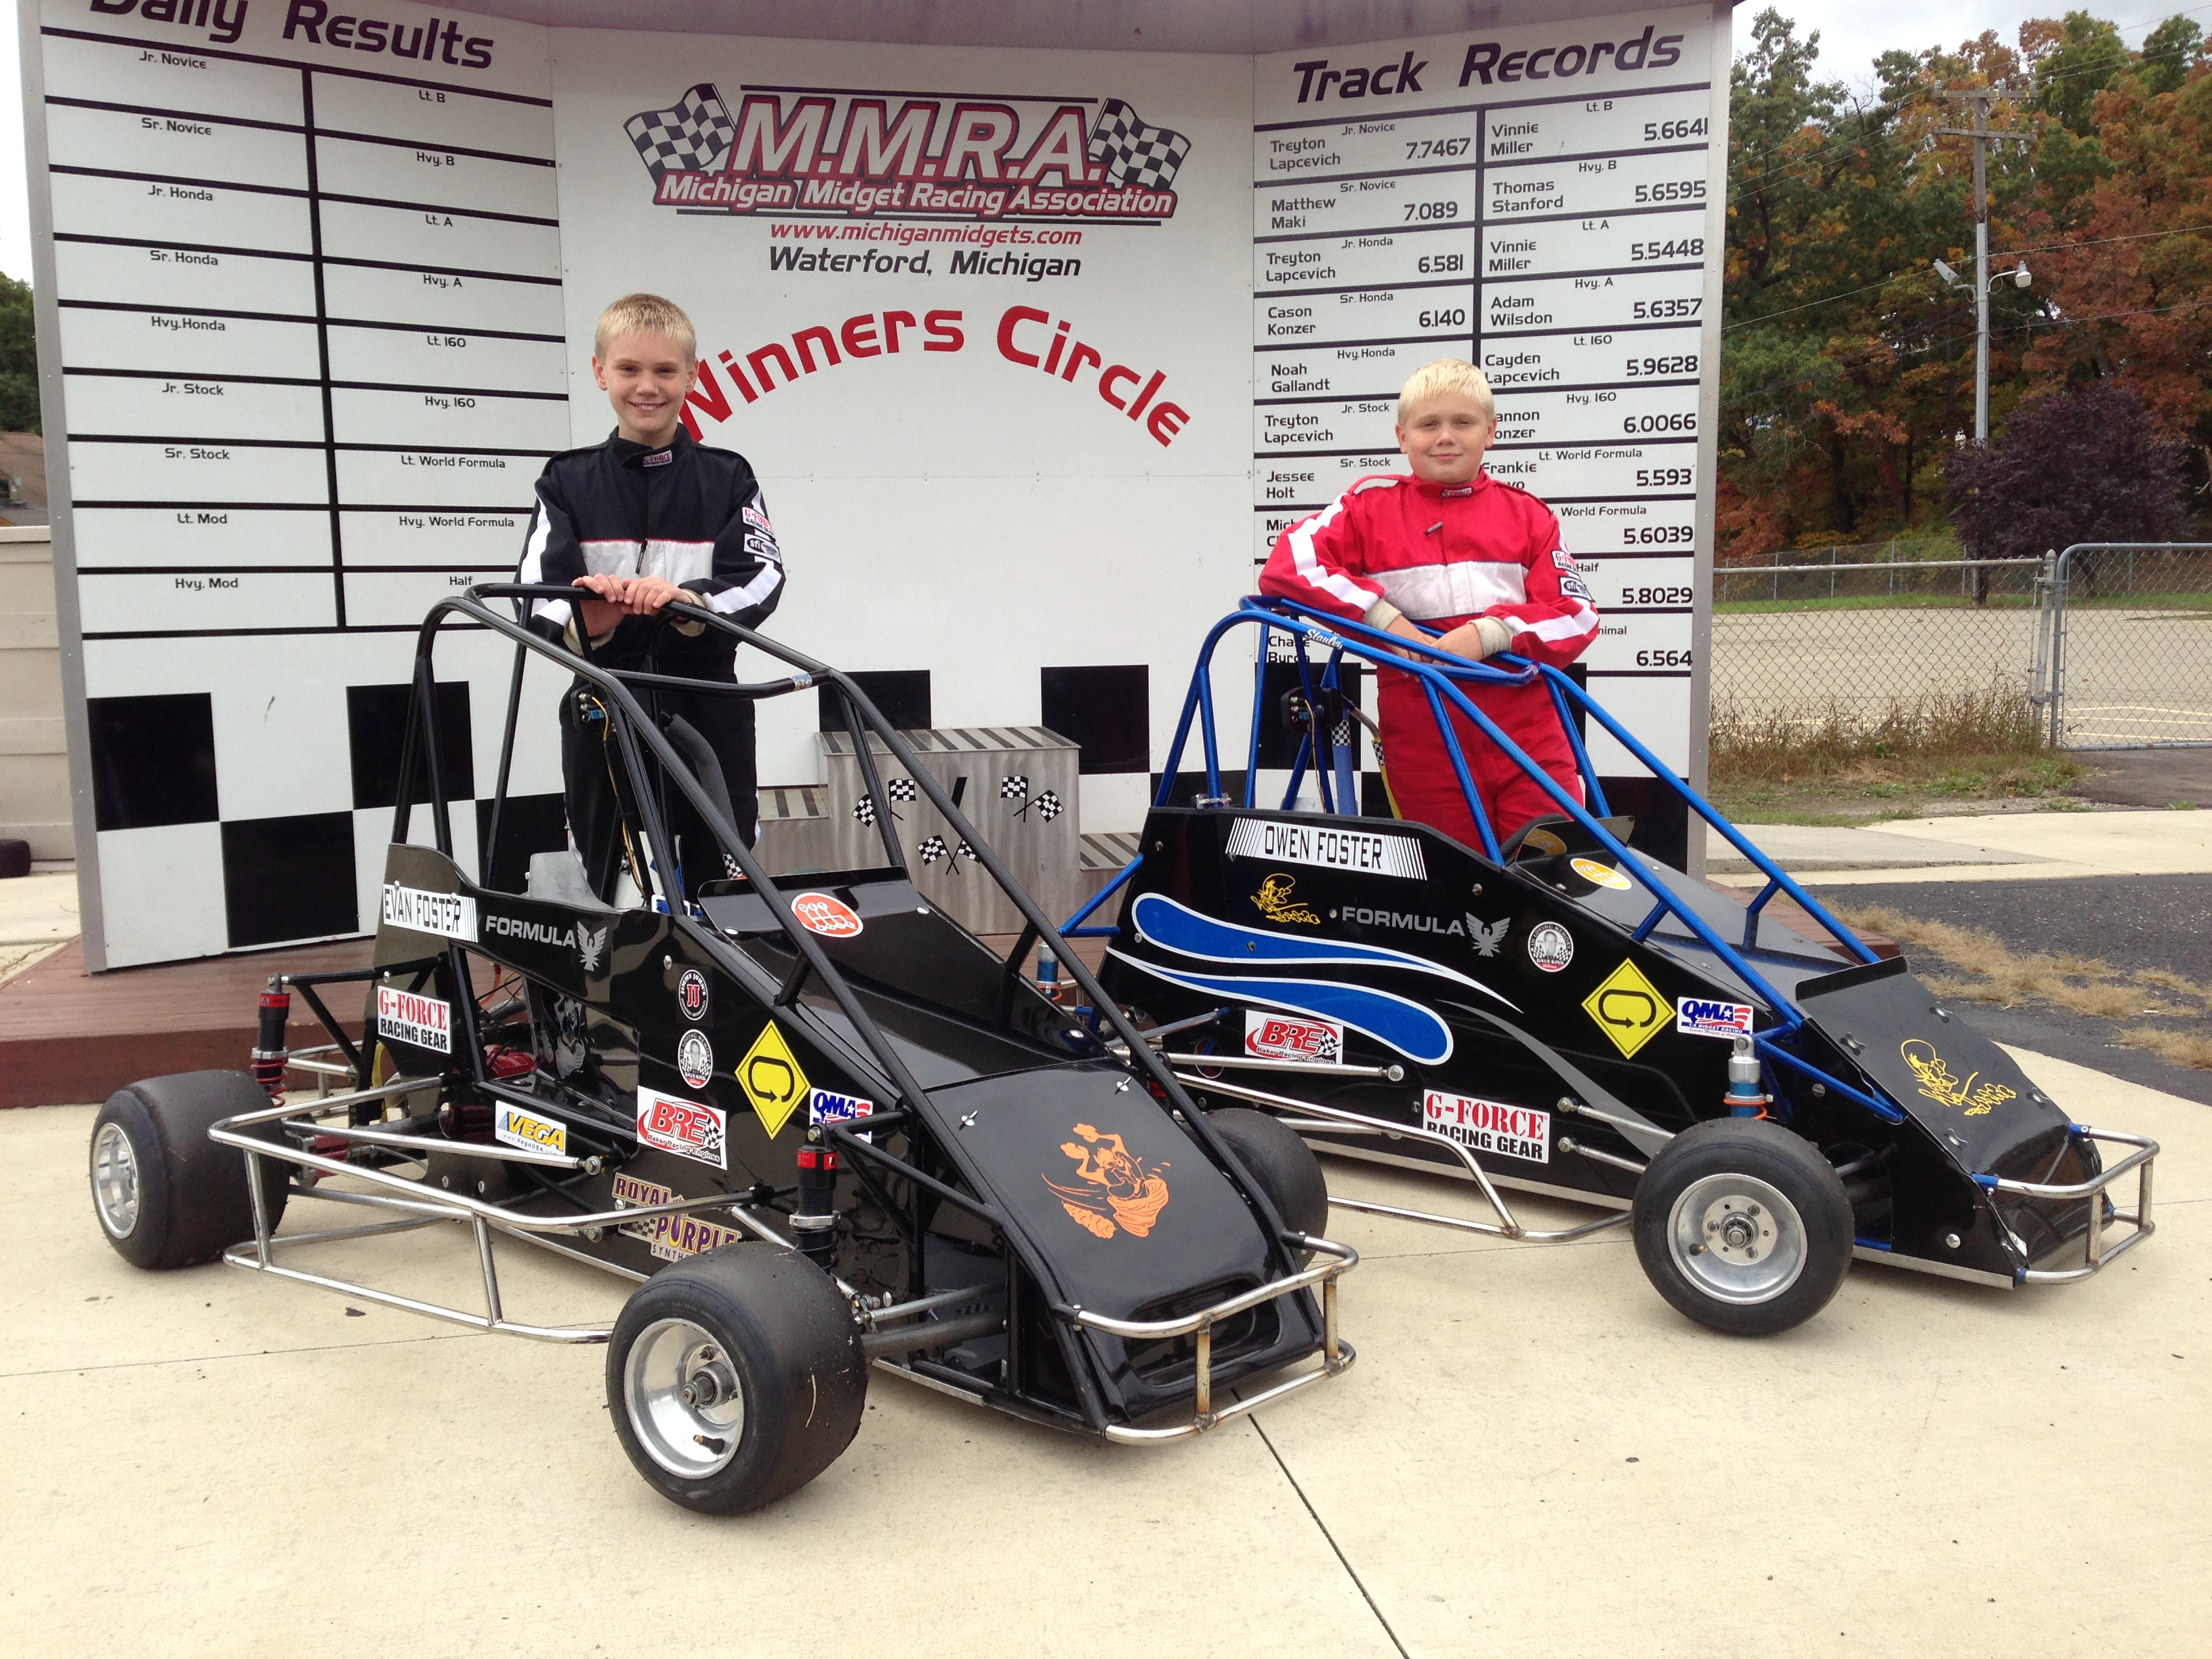 Quater midget racing recommend you